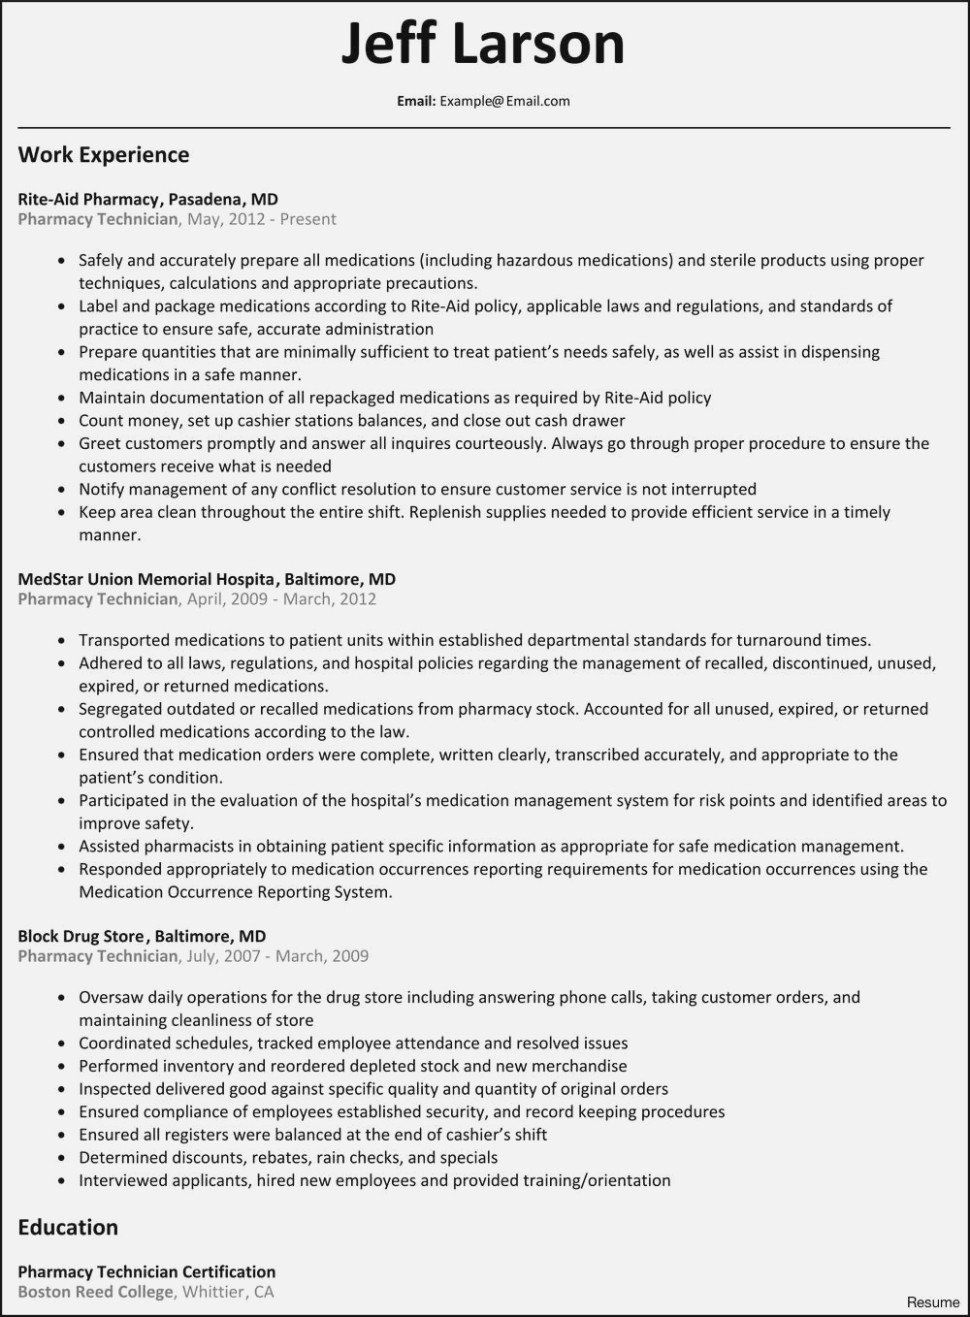 Pharmacy Technician Job Description for Resume Pharmacy